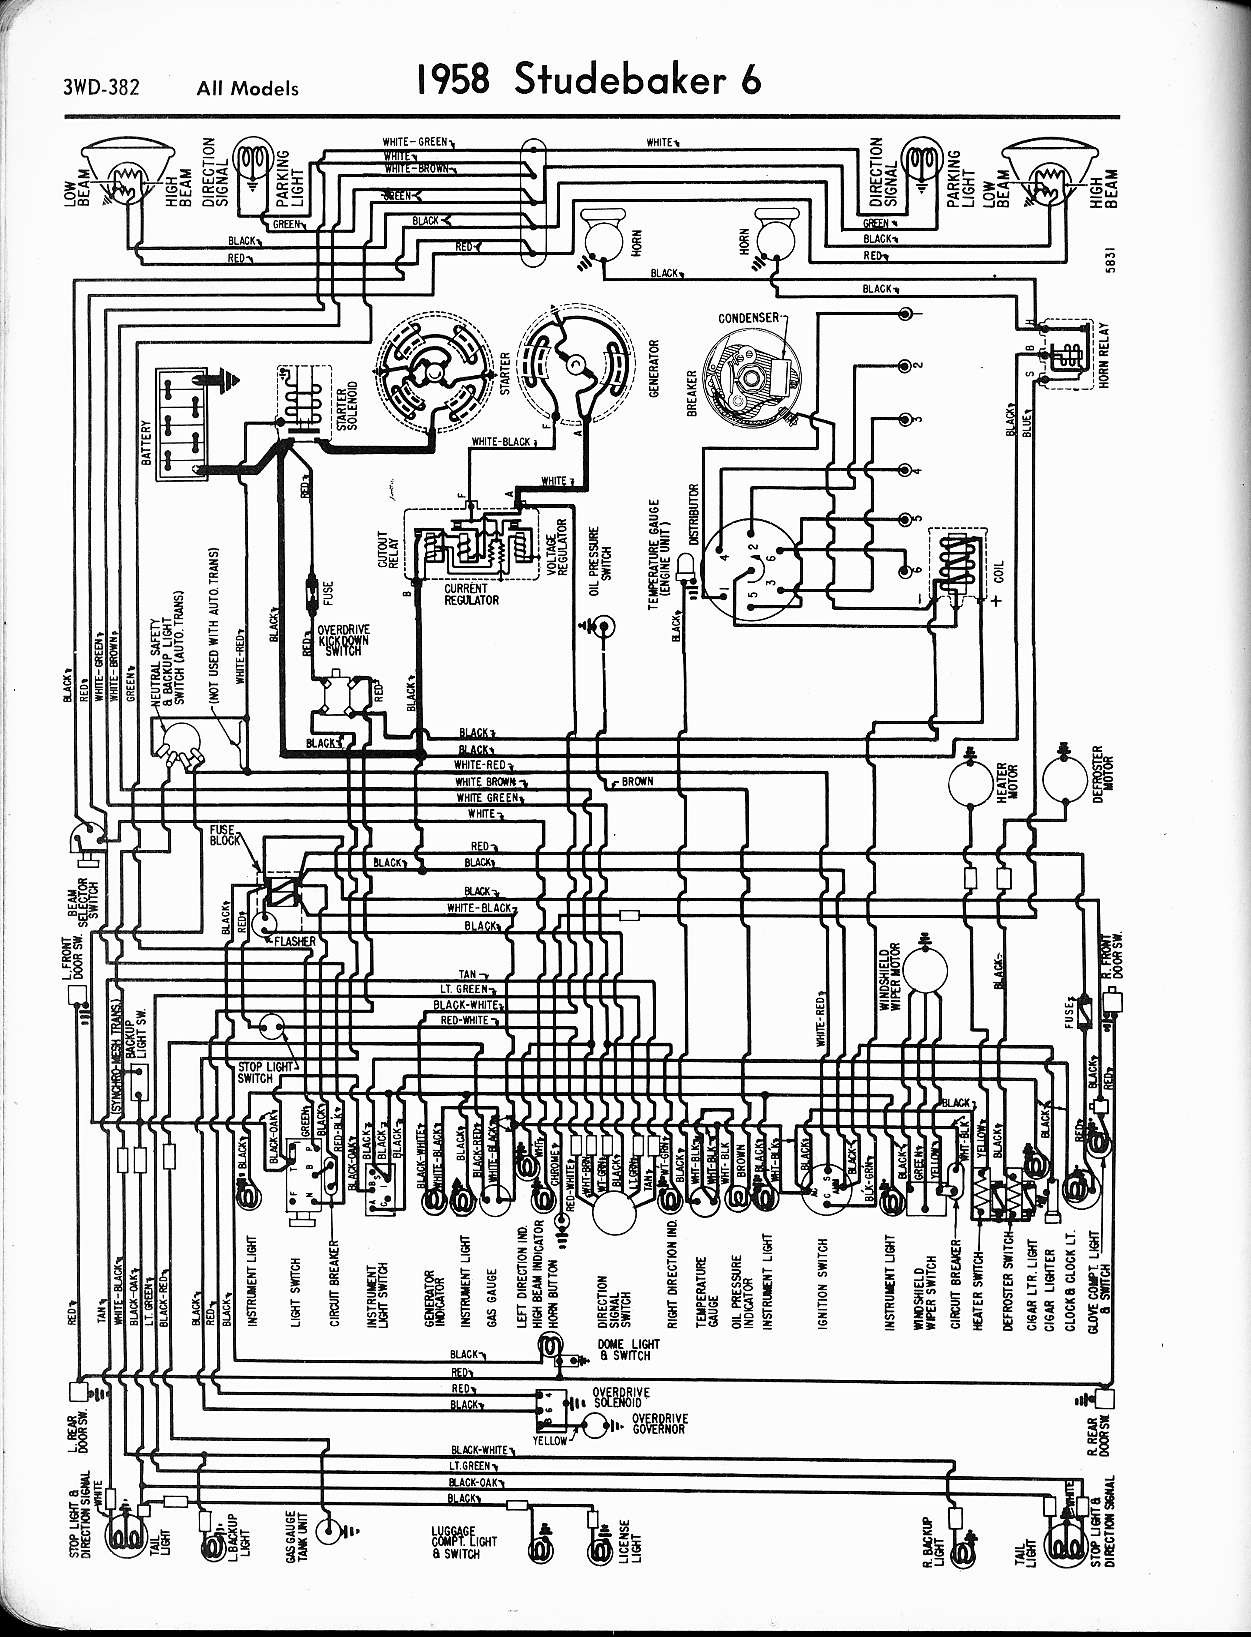 2004 honda pilot power window wiring diagram